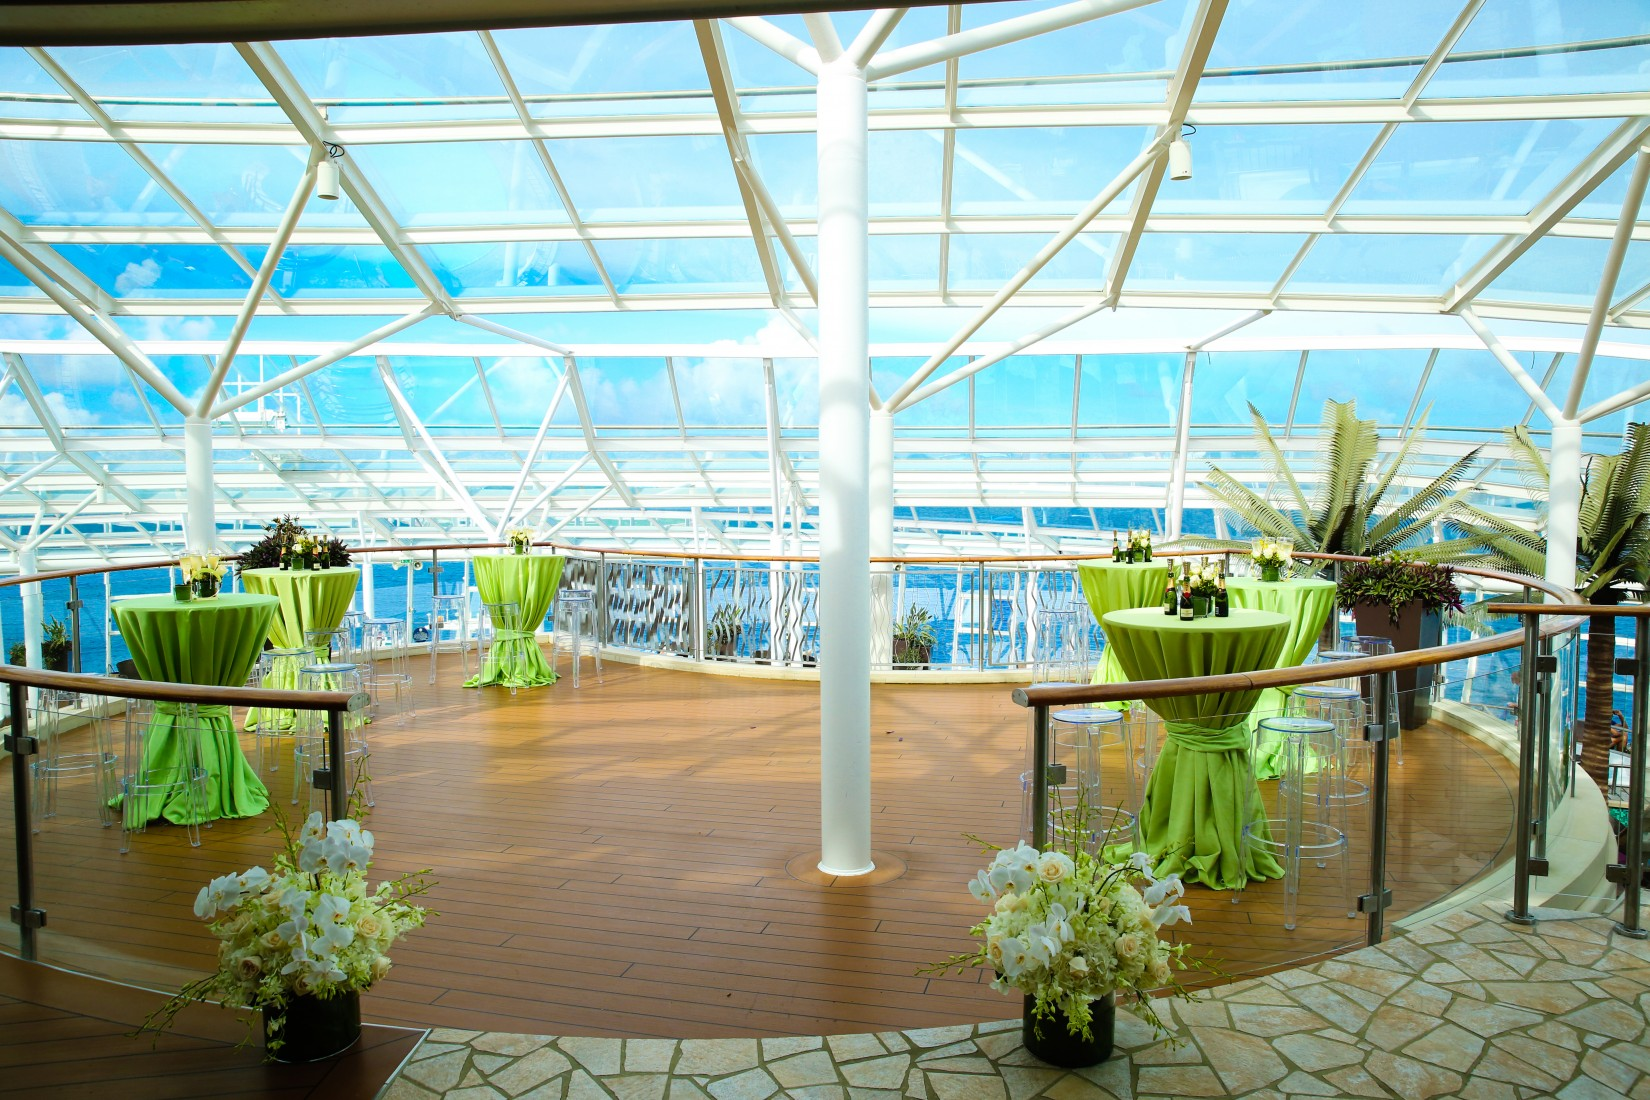 How to plan an easy destination wedding royal caribbean for Plan a destination wedding